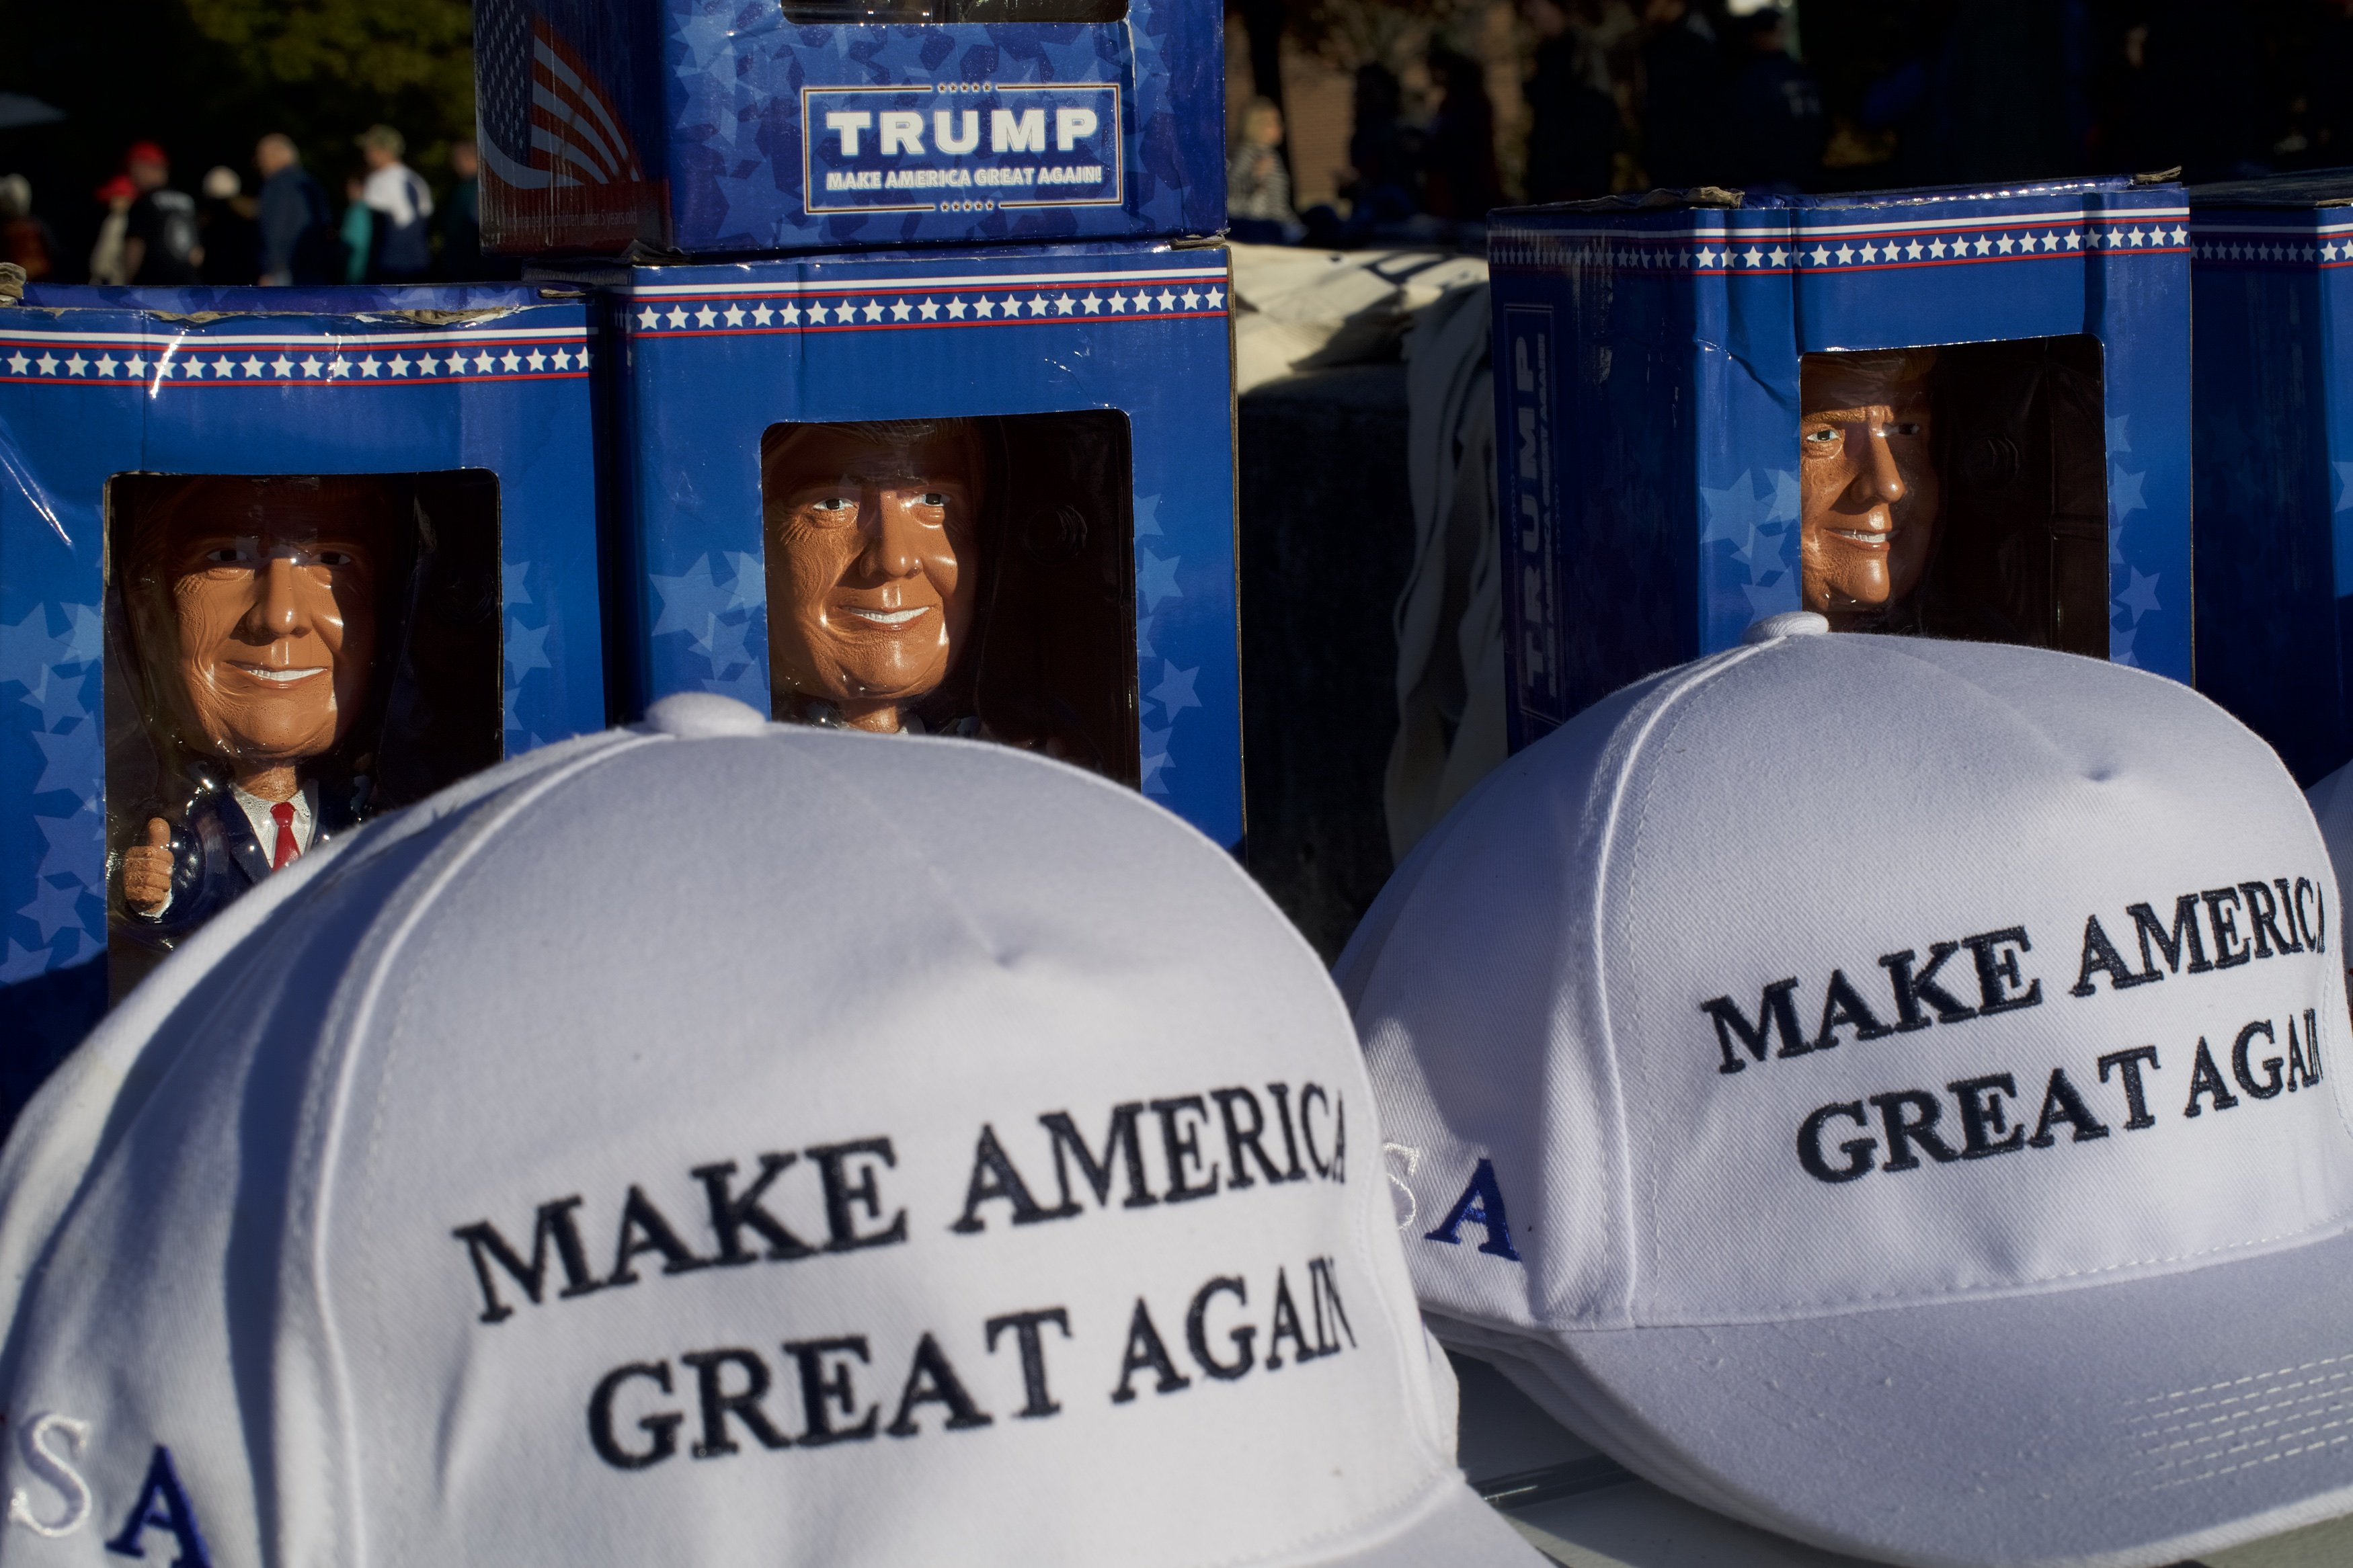 MAGA hats being sold at a campaign event in Hershey, Pennsylvania | Photo: Getty Images